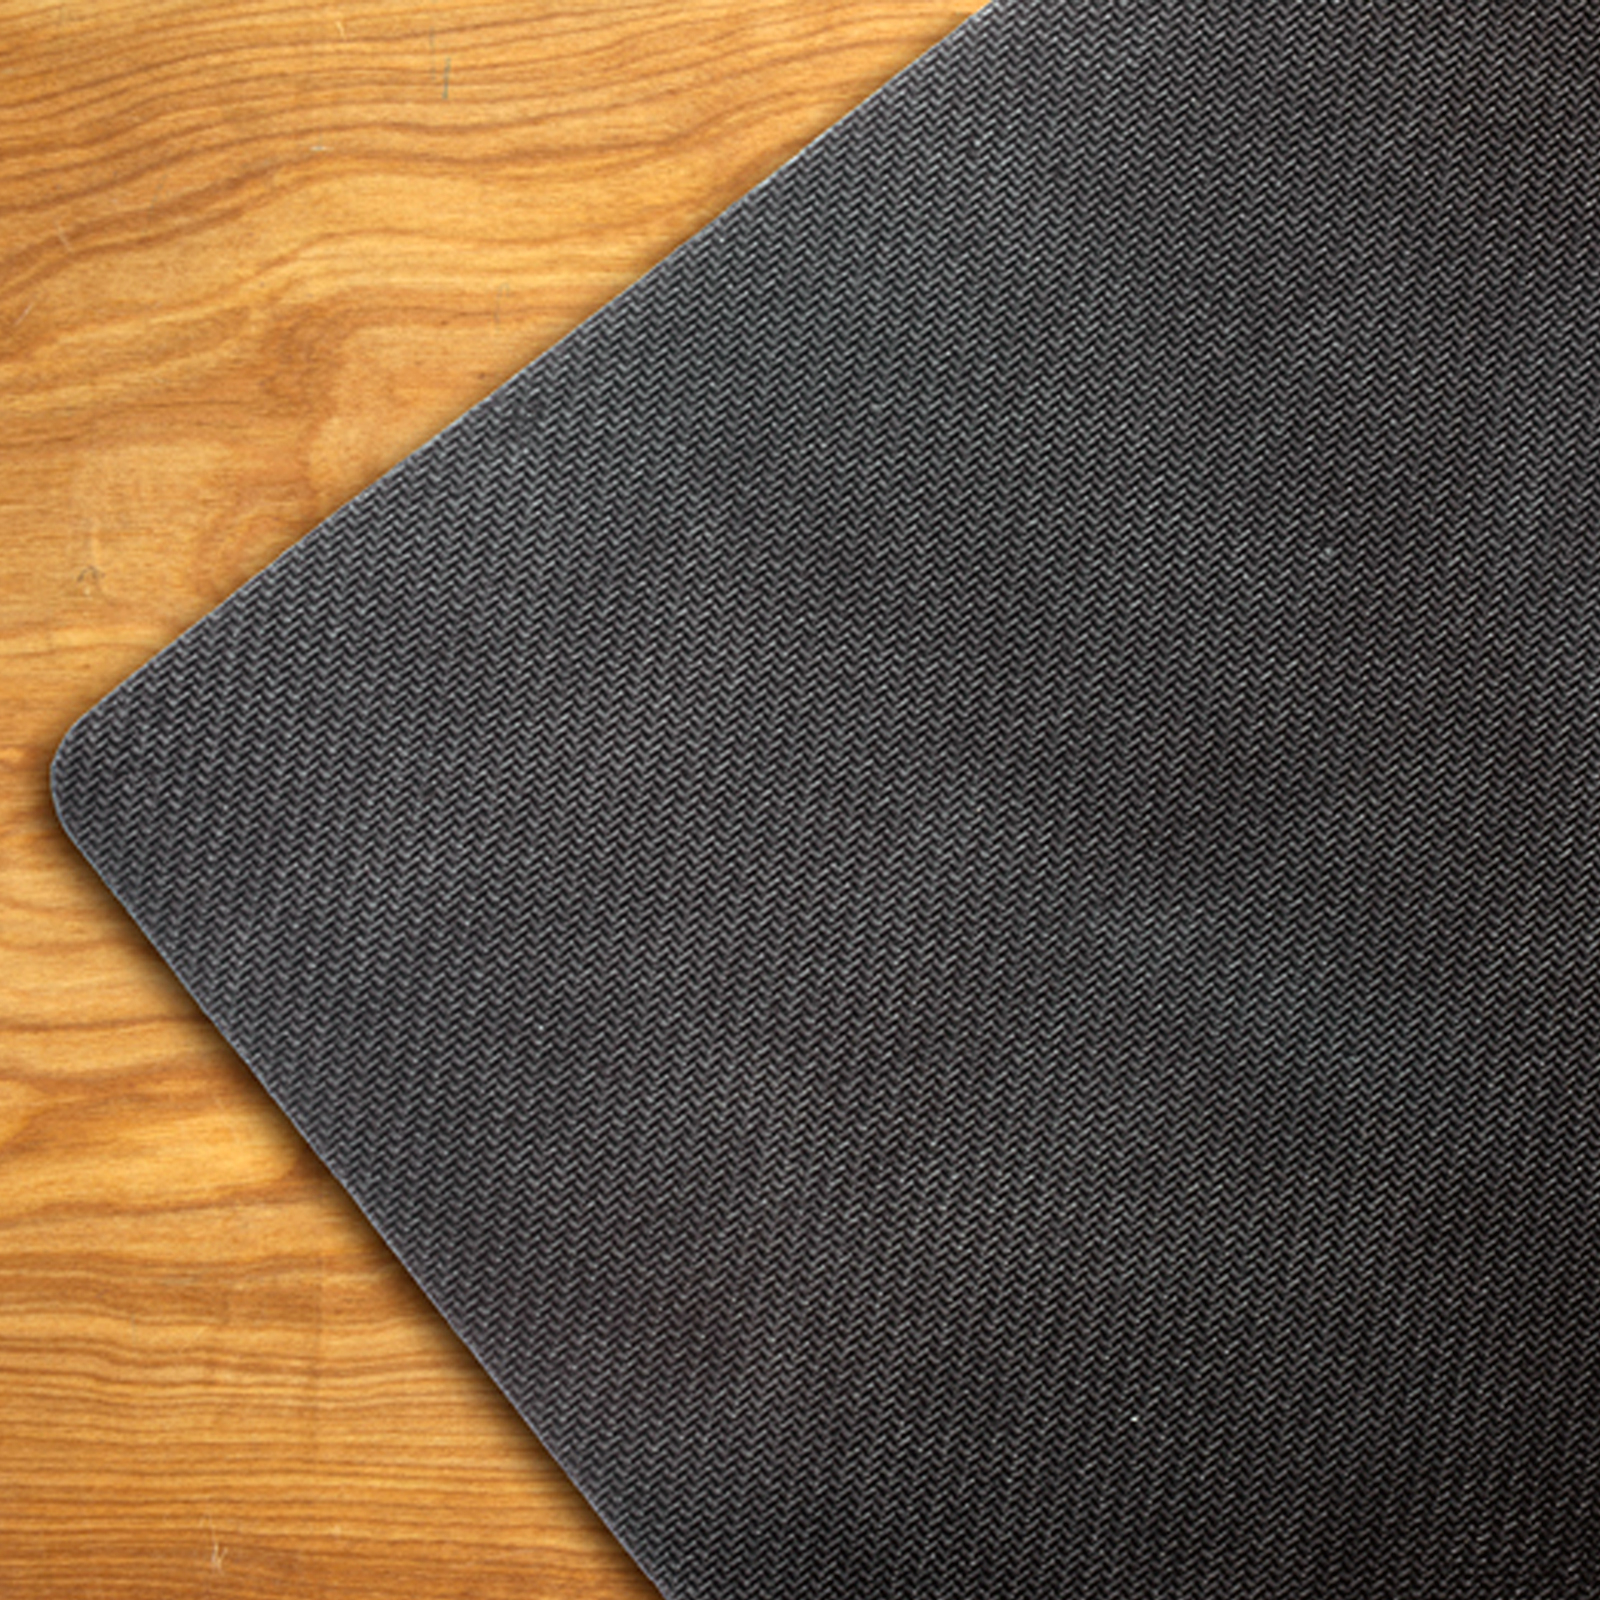 Non-Slip Gun and Electronics Cleaning Mat Washable 36 Inch